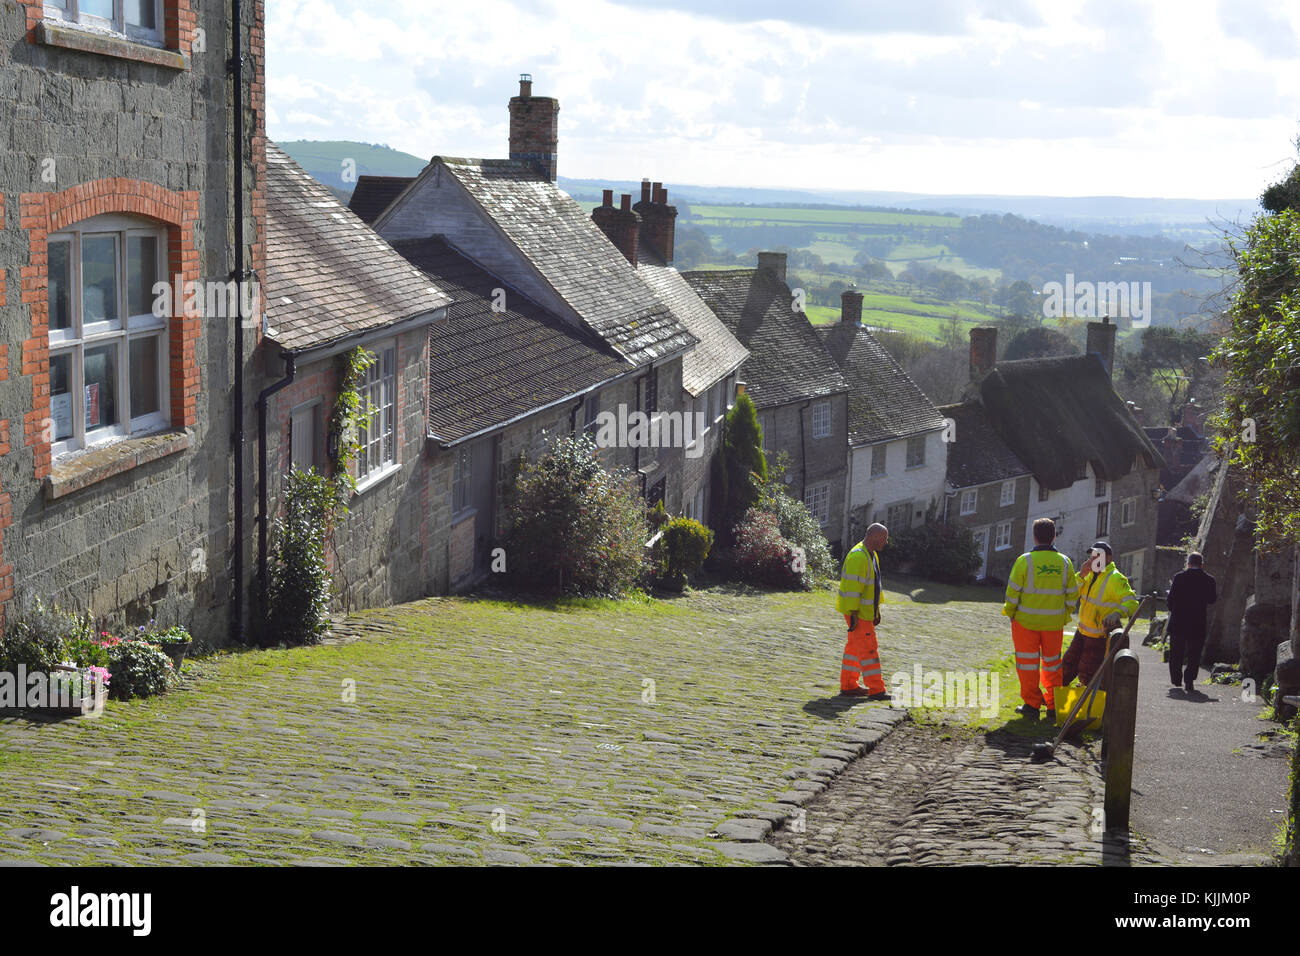 Three workmen discussing clearing the grass from the cobblestones of Shaftesbury Gold Hill, Dorset, England - Stock Image